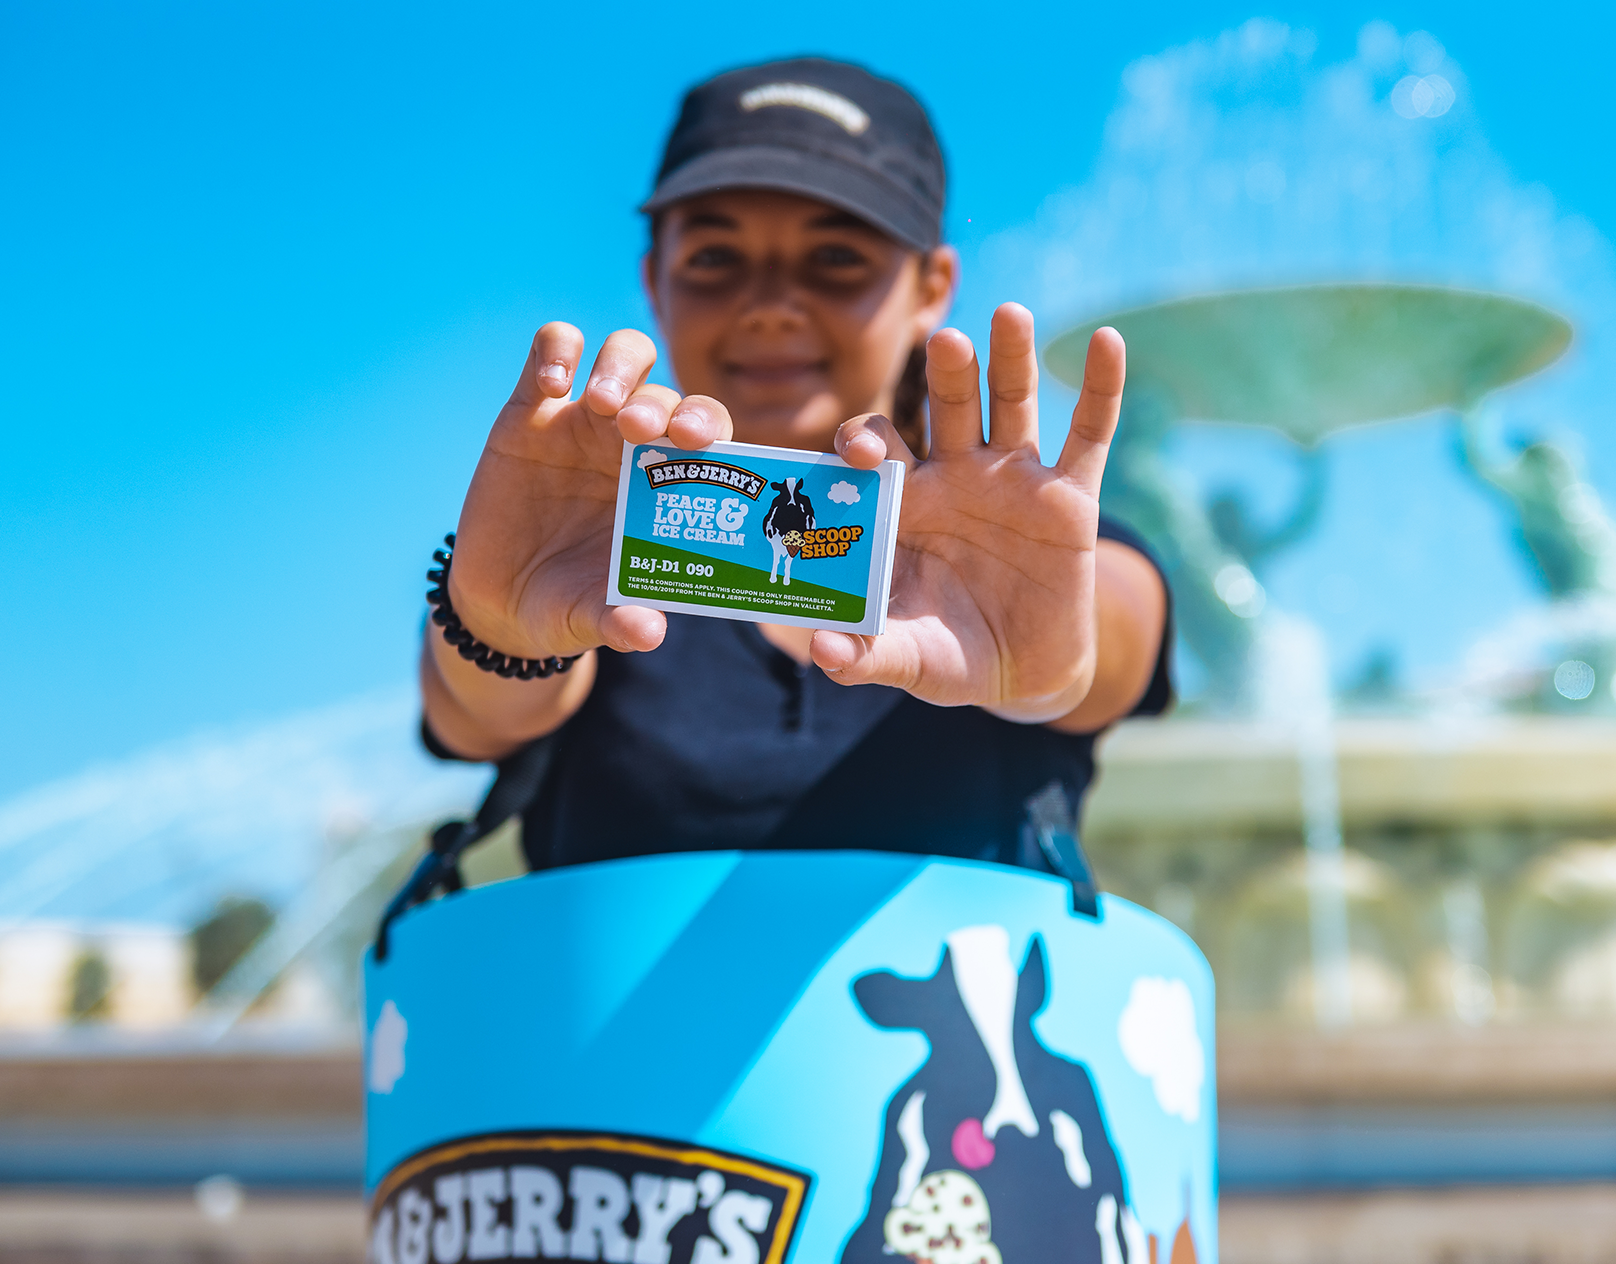 Ben & Jerry's – Spreading the Joy in Malta image